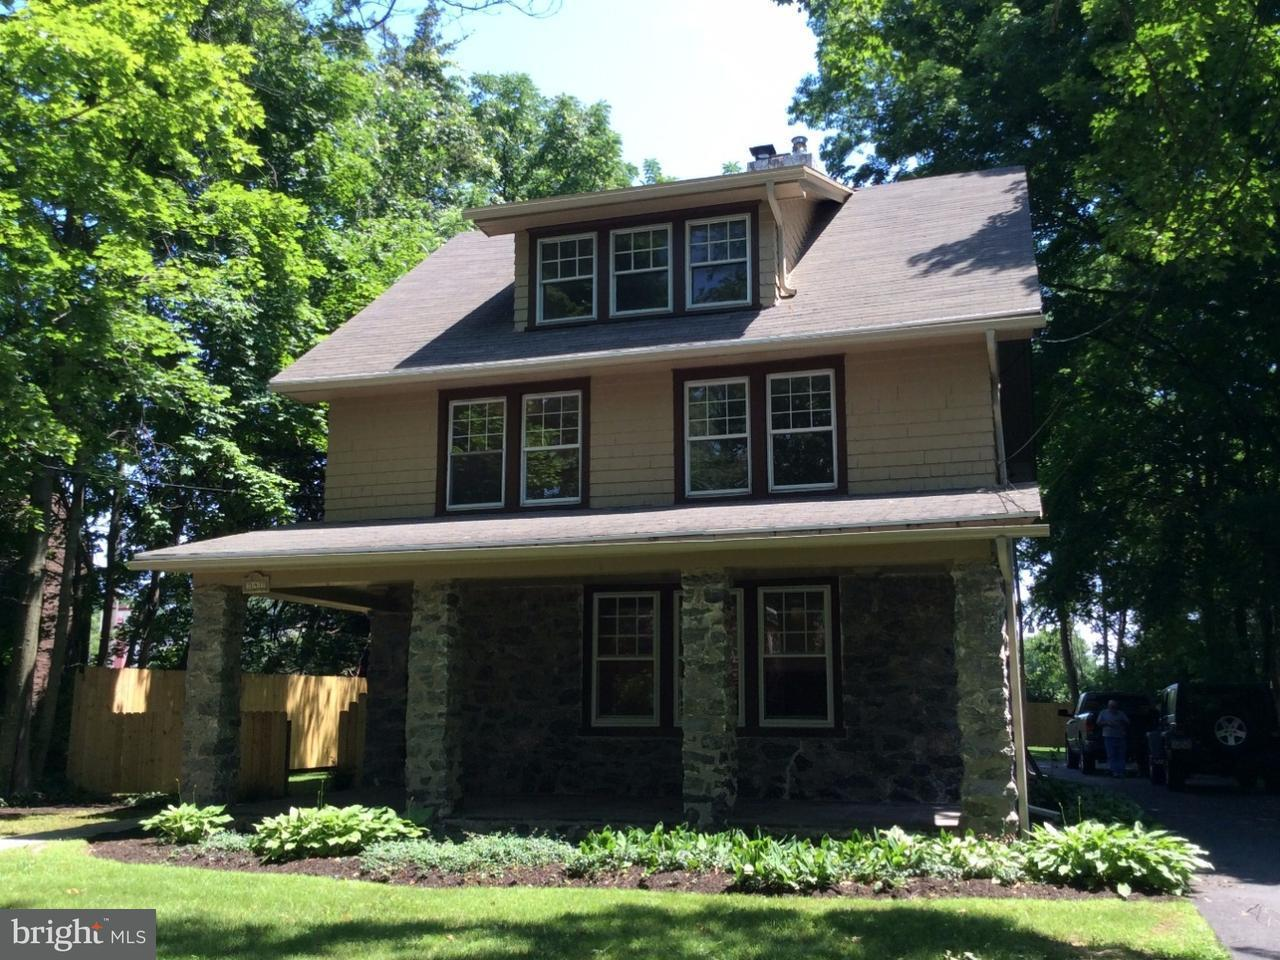 Single Family Home for Rent at 541 RIVERVIEW Road Swarthmore, Pennsylvania 19081 United States